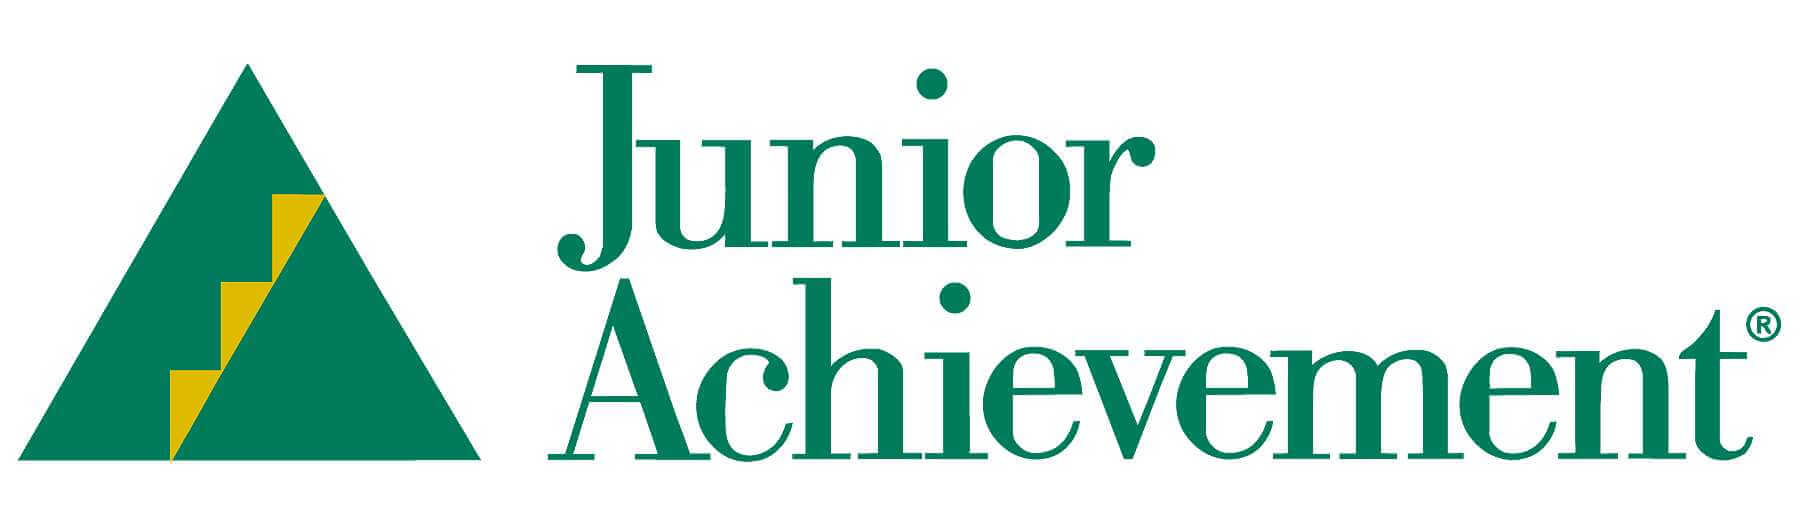 junior achievement louiseville kentucky